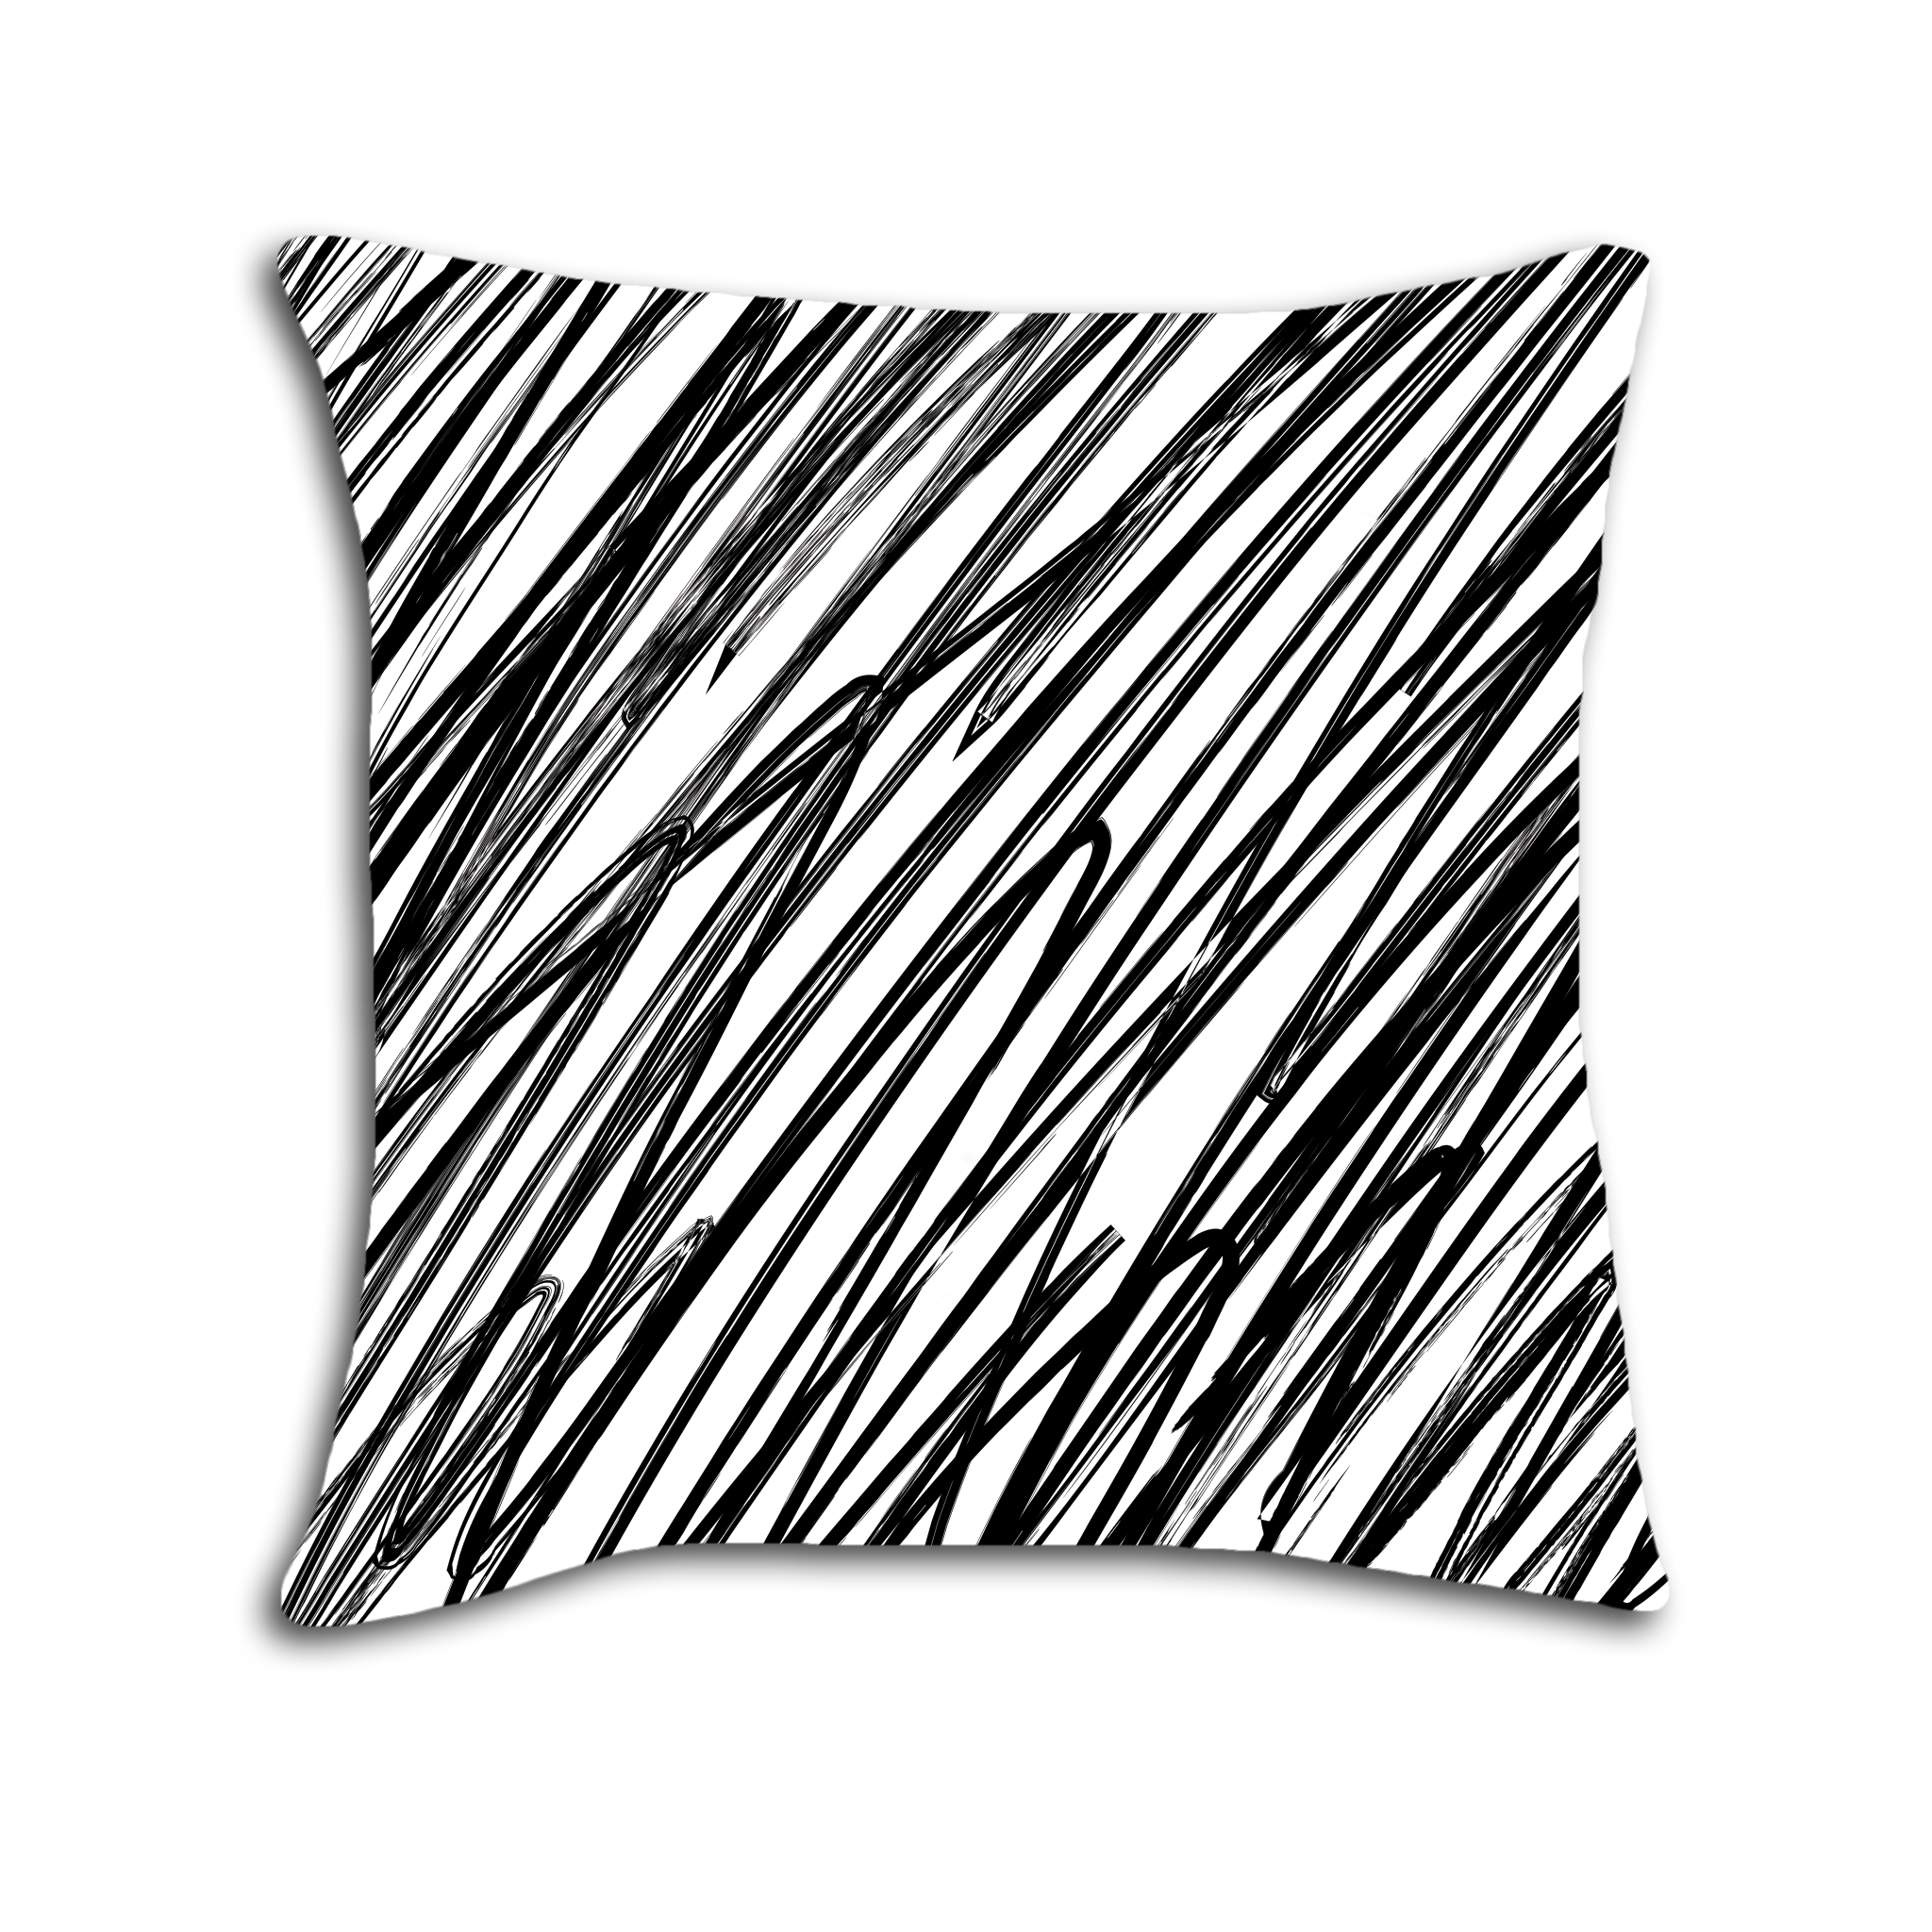 Doodle lines png. Black and white striped